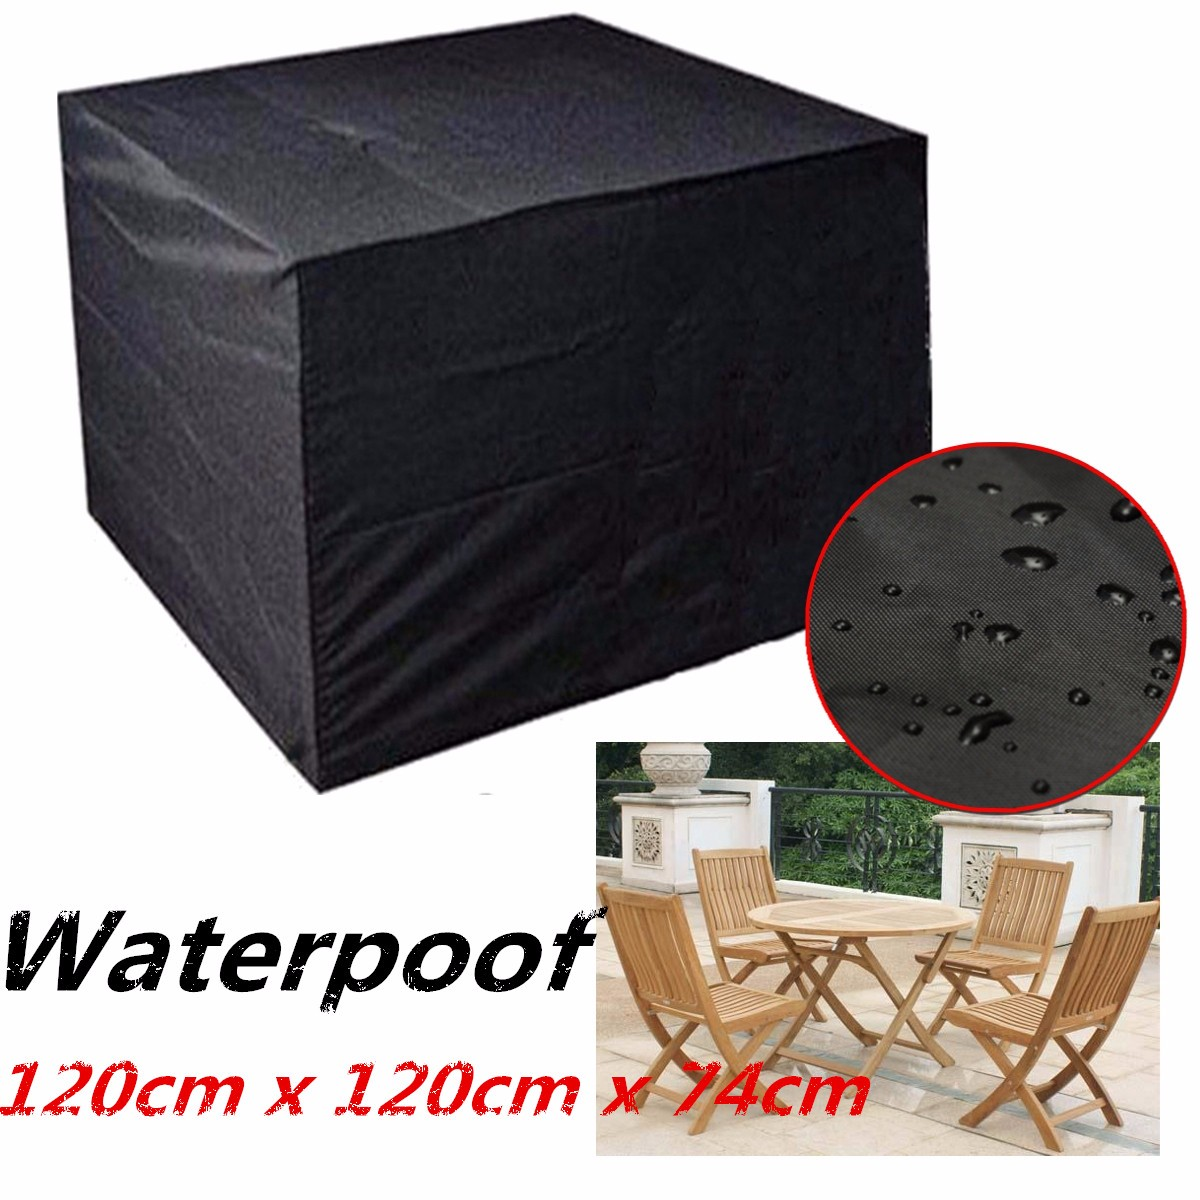 Furniture Dust Cover Fabric: Waterproof Cube Furniture Garden Outdoor Dust UV Polyester